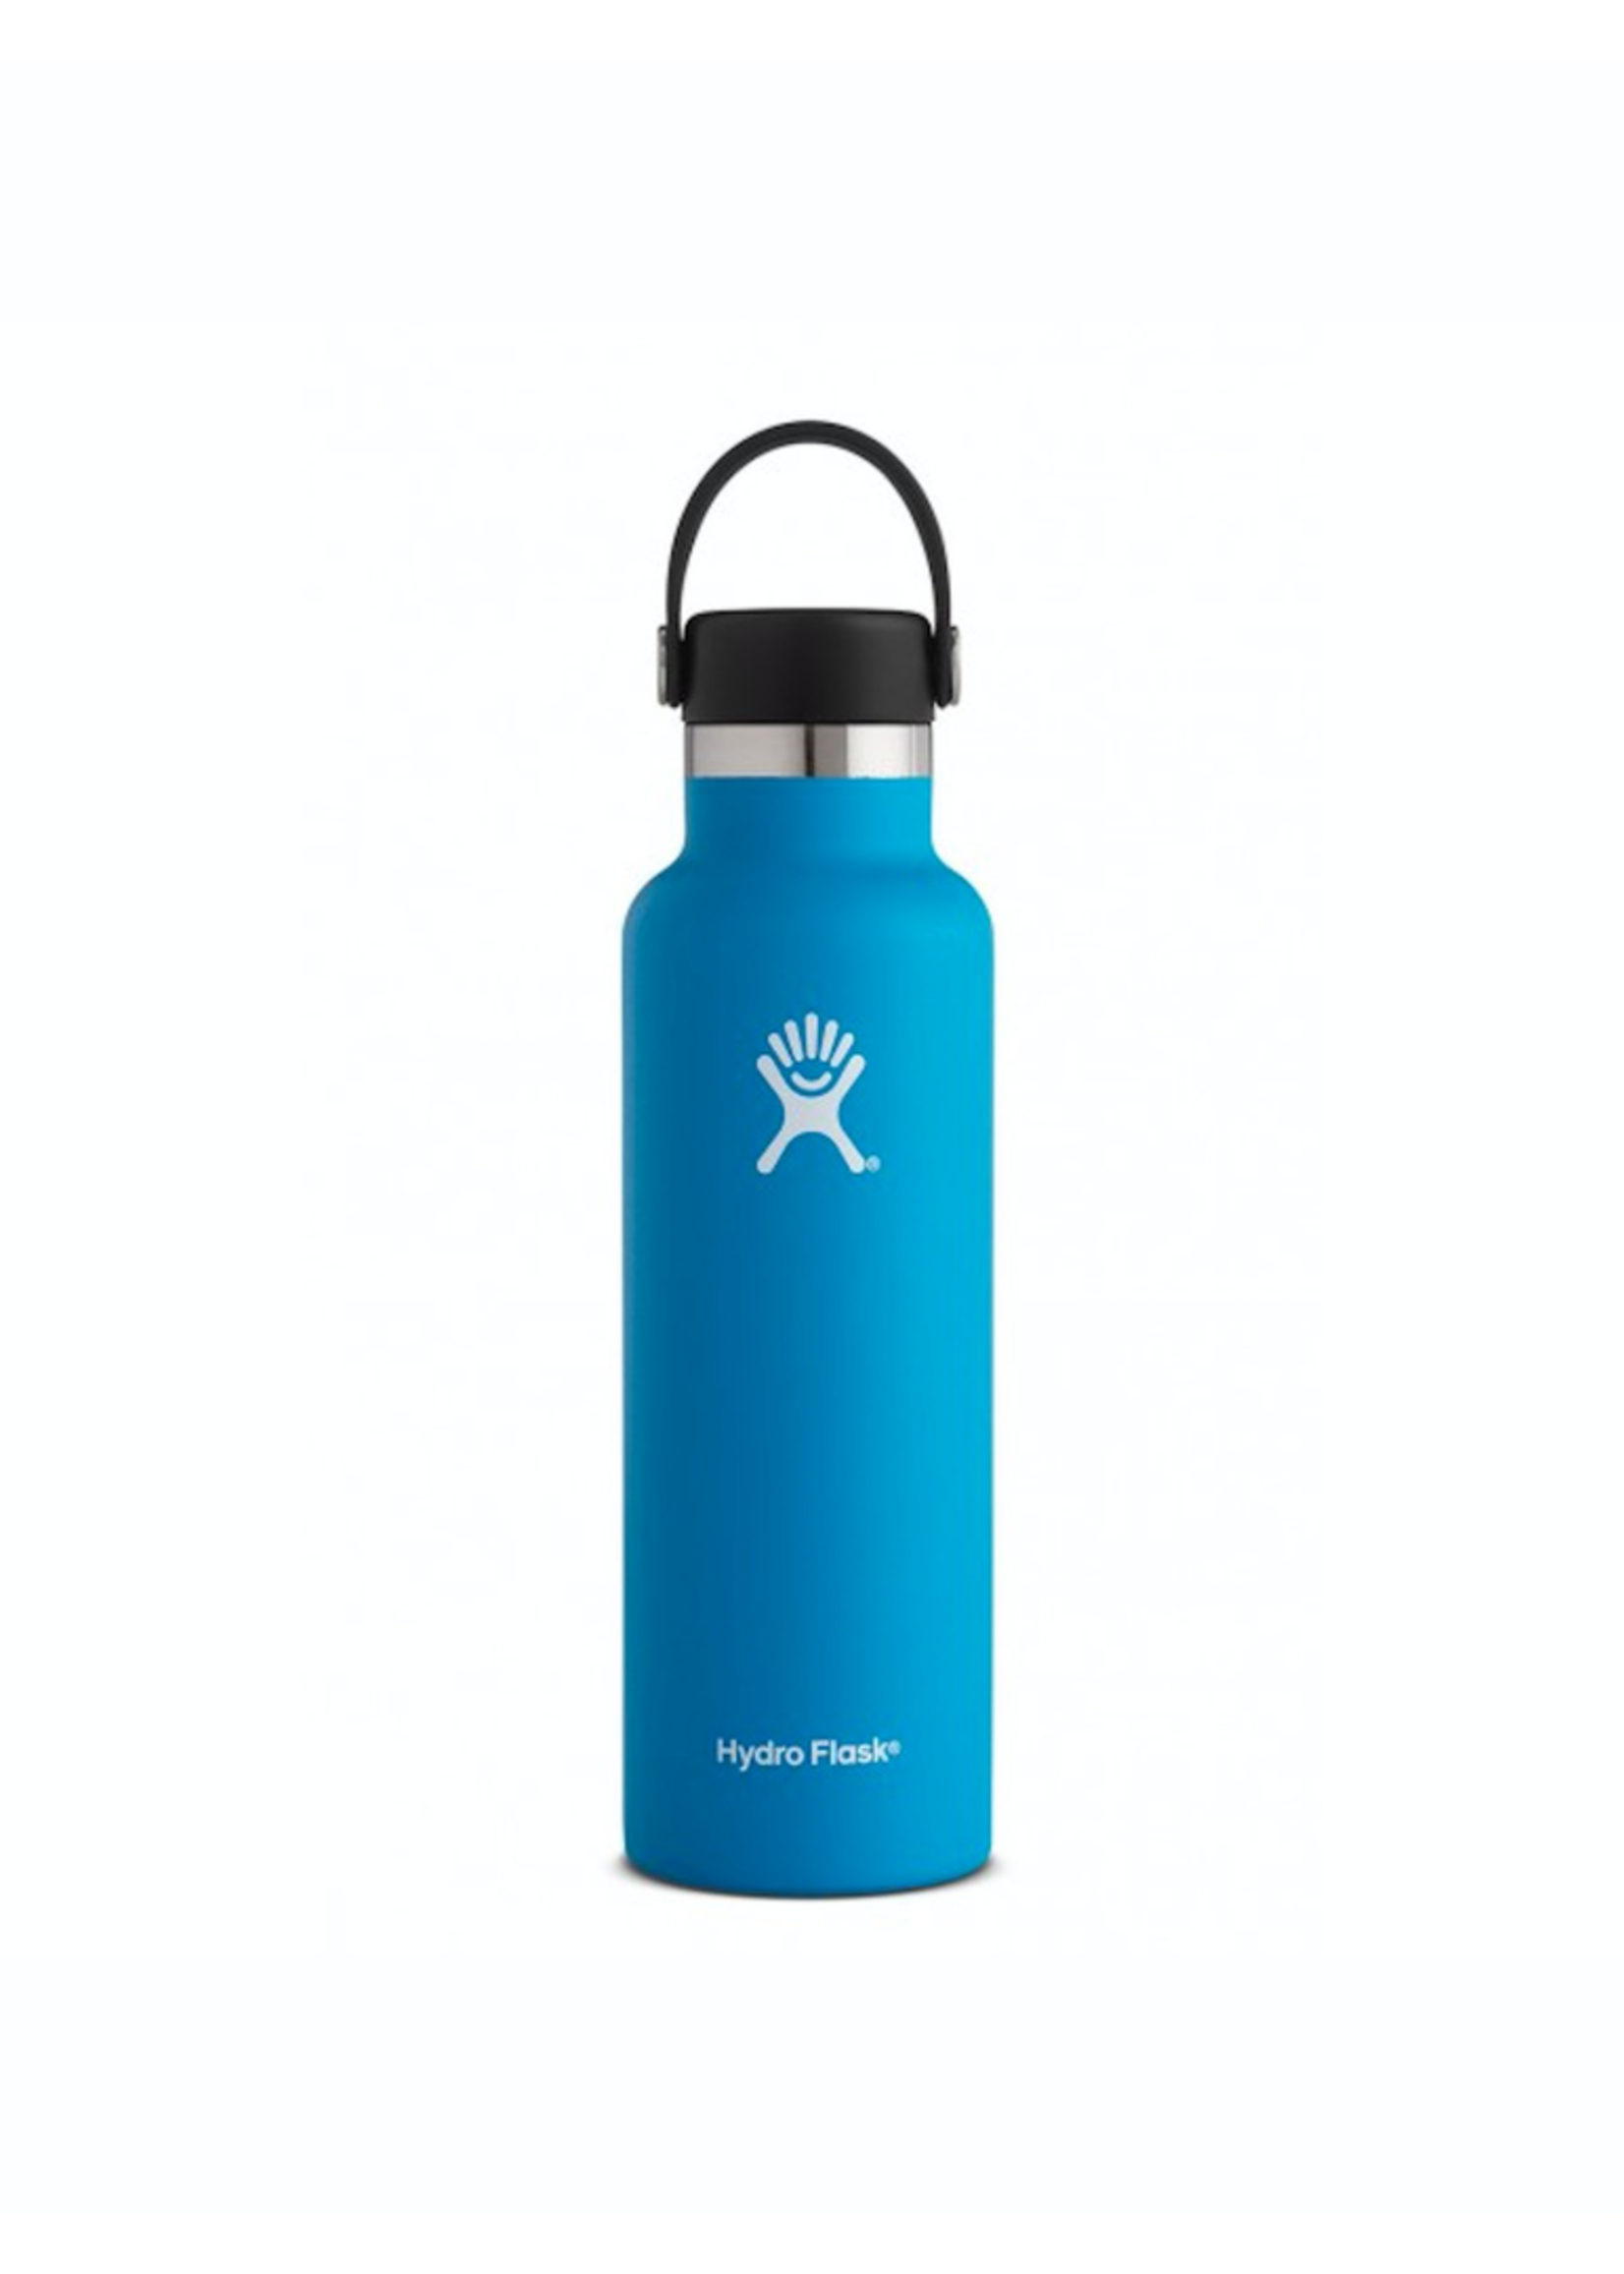 Hydro Flask Hydro Flask, 21 oz Standard Mouth Flex Cap Insulated Stainless Steel Bottle in Pacific